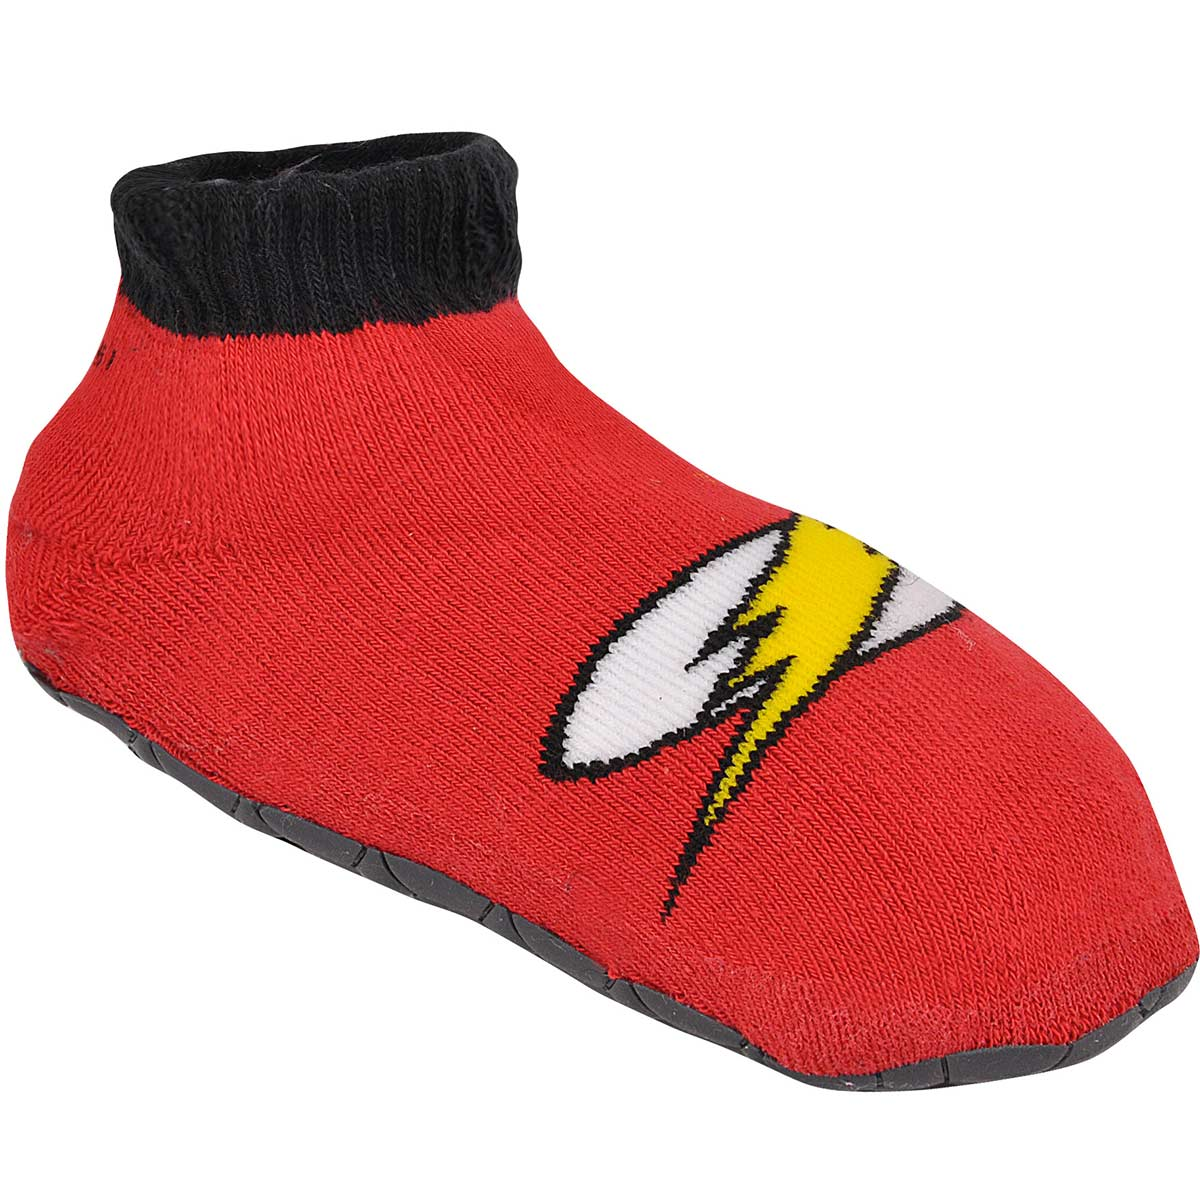 Meia Antiderrapante Infantil Cano Alto The Flash Logo